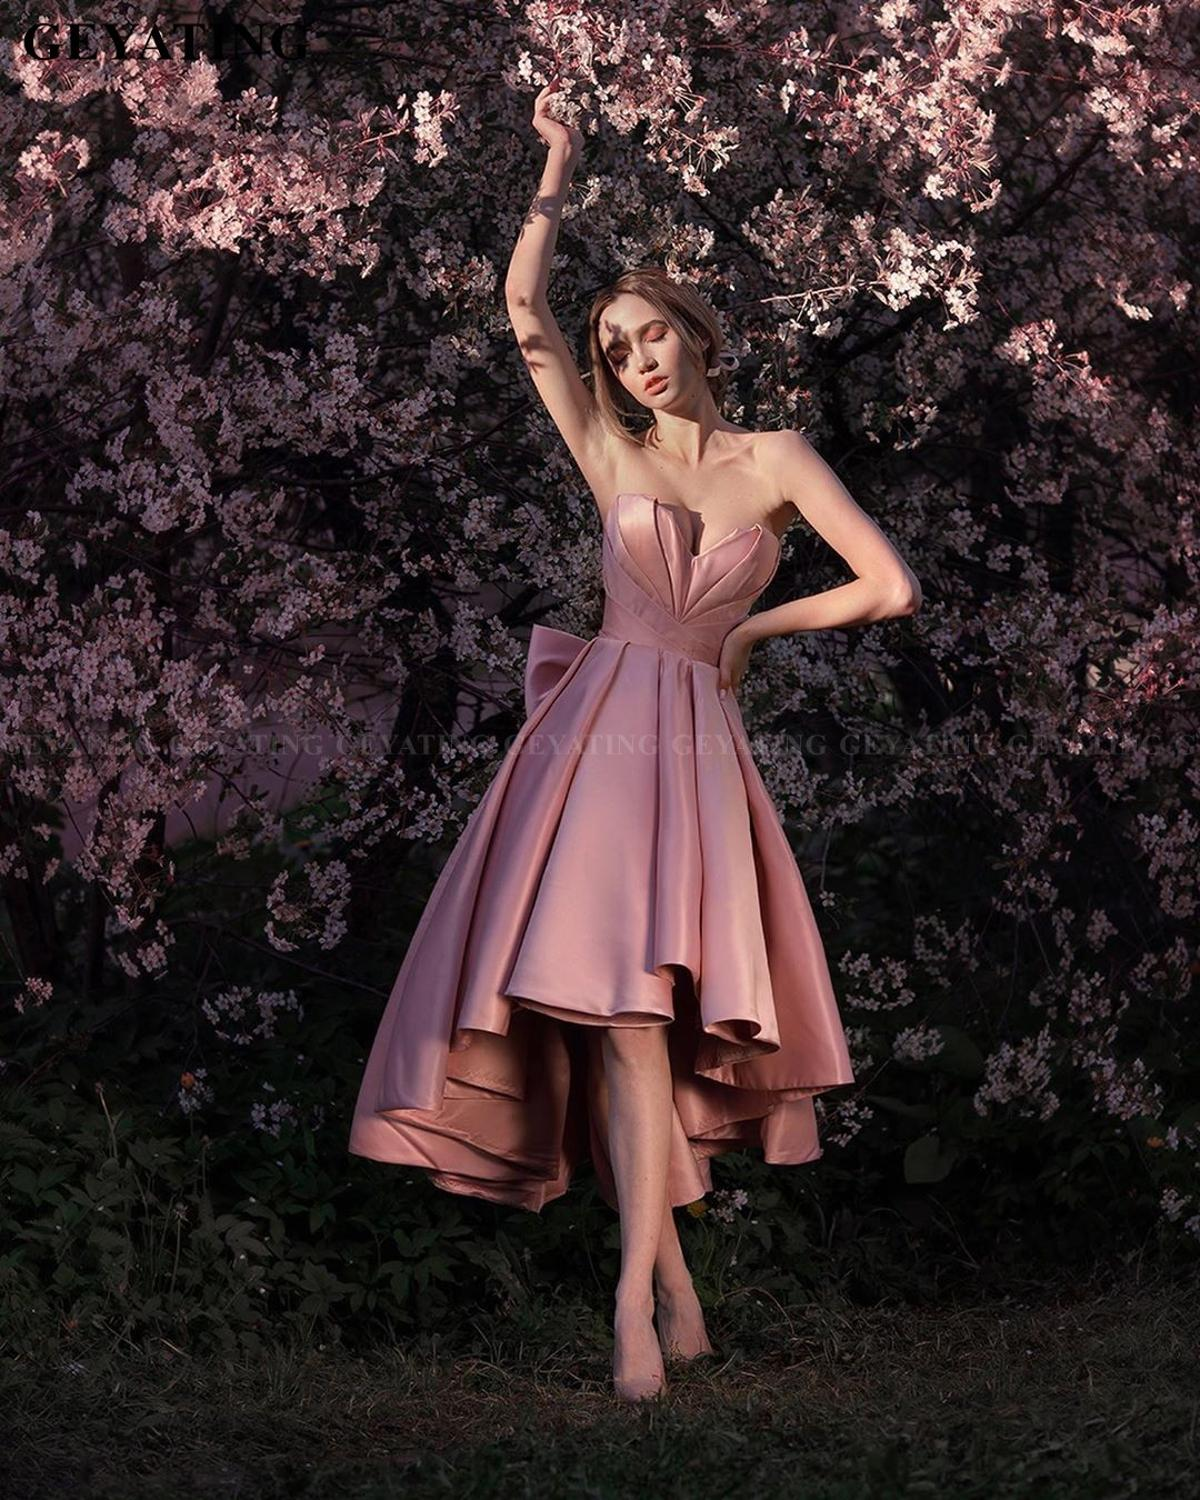 Sexy Sweetheart Blush Pink High Low Prom Dresses Formal Gowns With Bow Plus Size A-line Homecoming Dress Lace-up Evening Dress